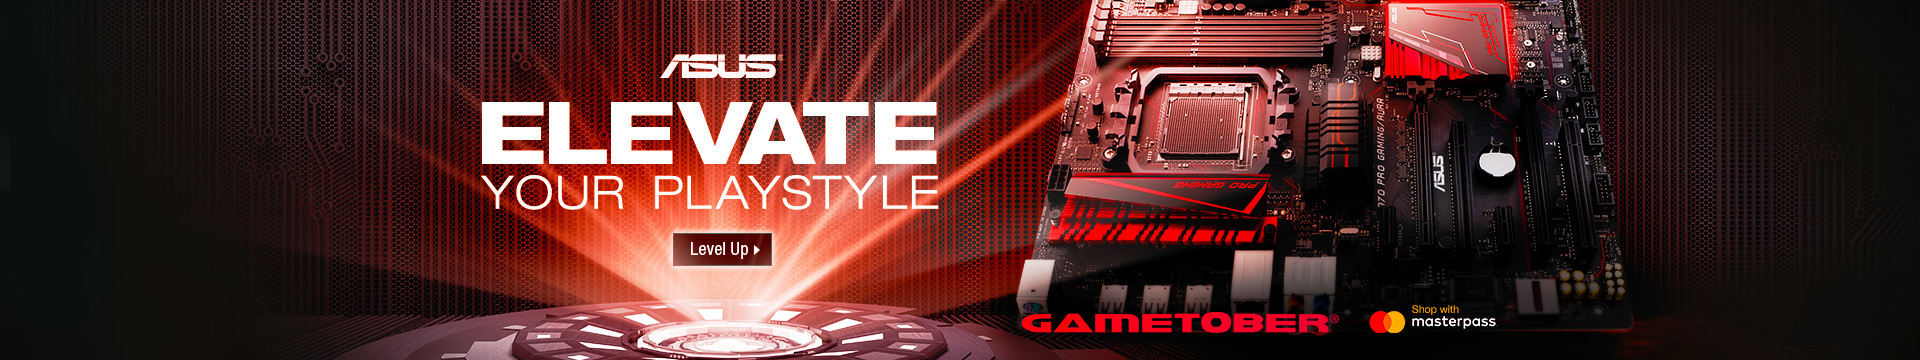 Elevate Your Playstyle